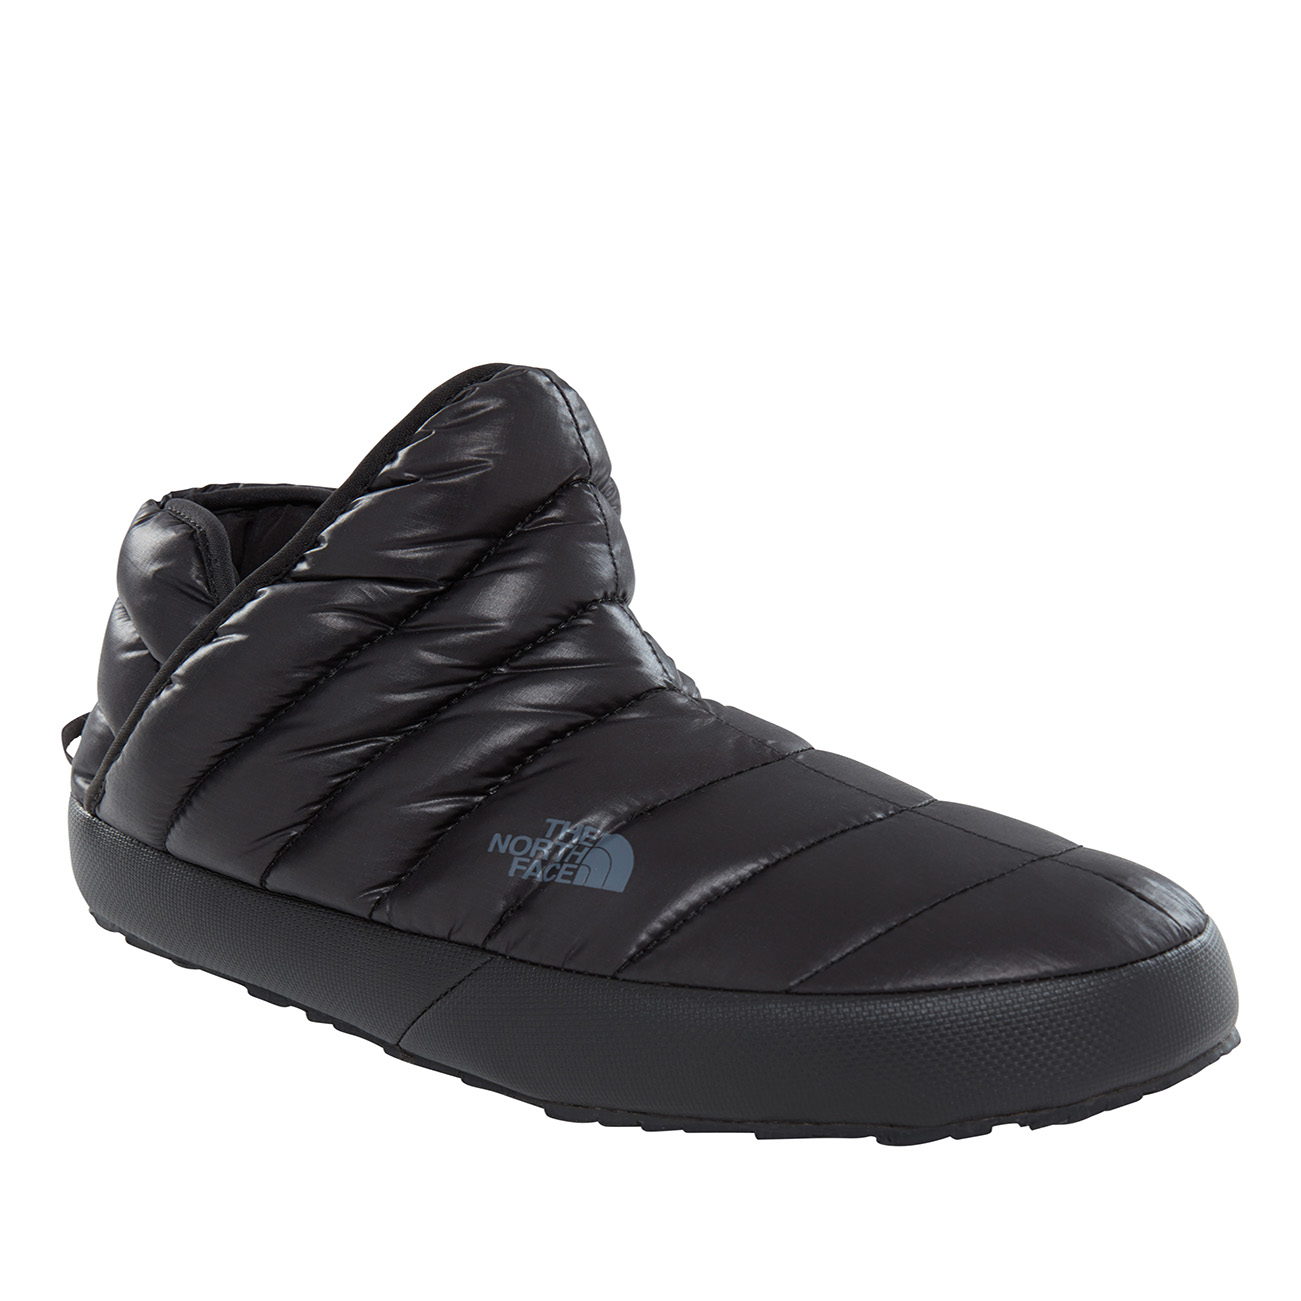 The North Face ThermoBall Traction Bootie Boots